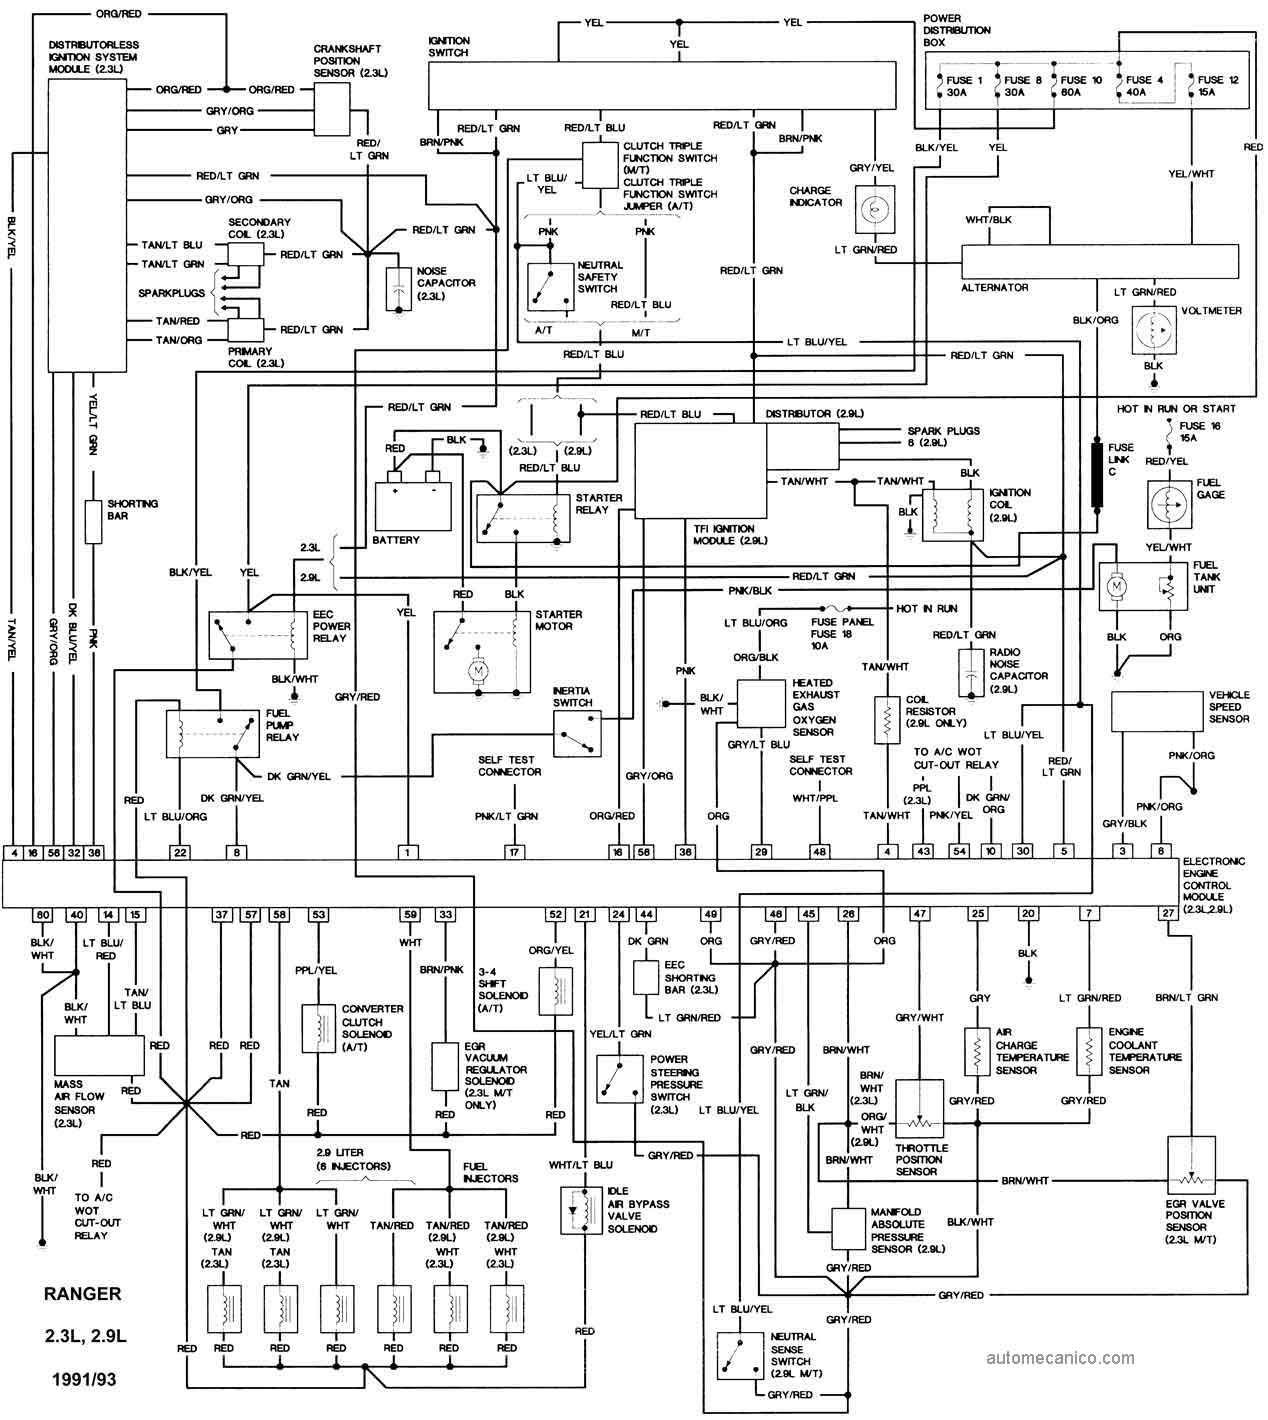 Imagranger01 Imagranger003: 1997 Ford F250 Fuse Box Diagram At Galaxydownloads.co